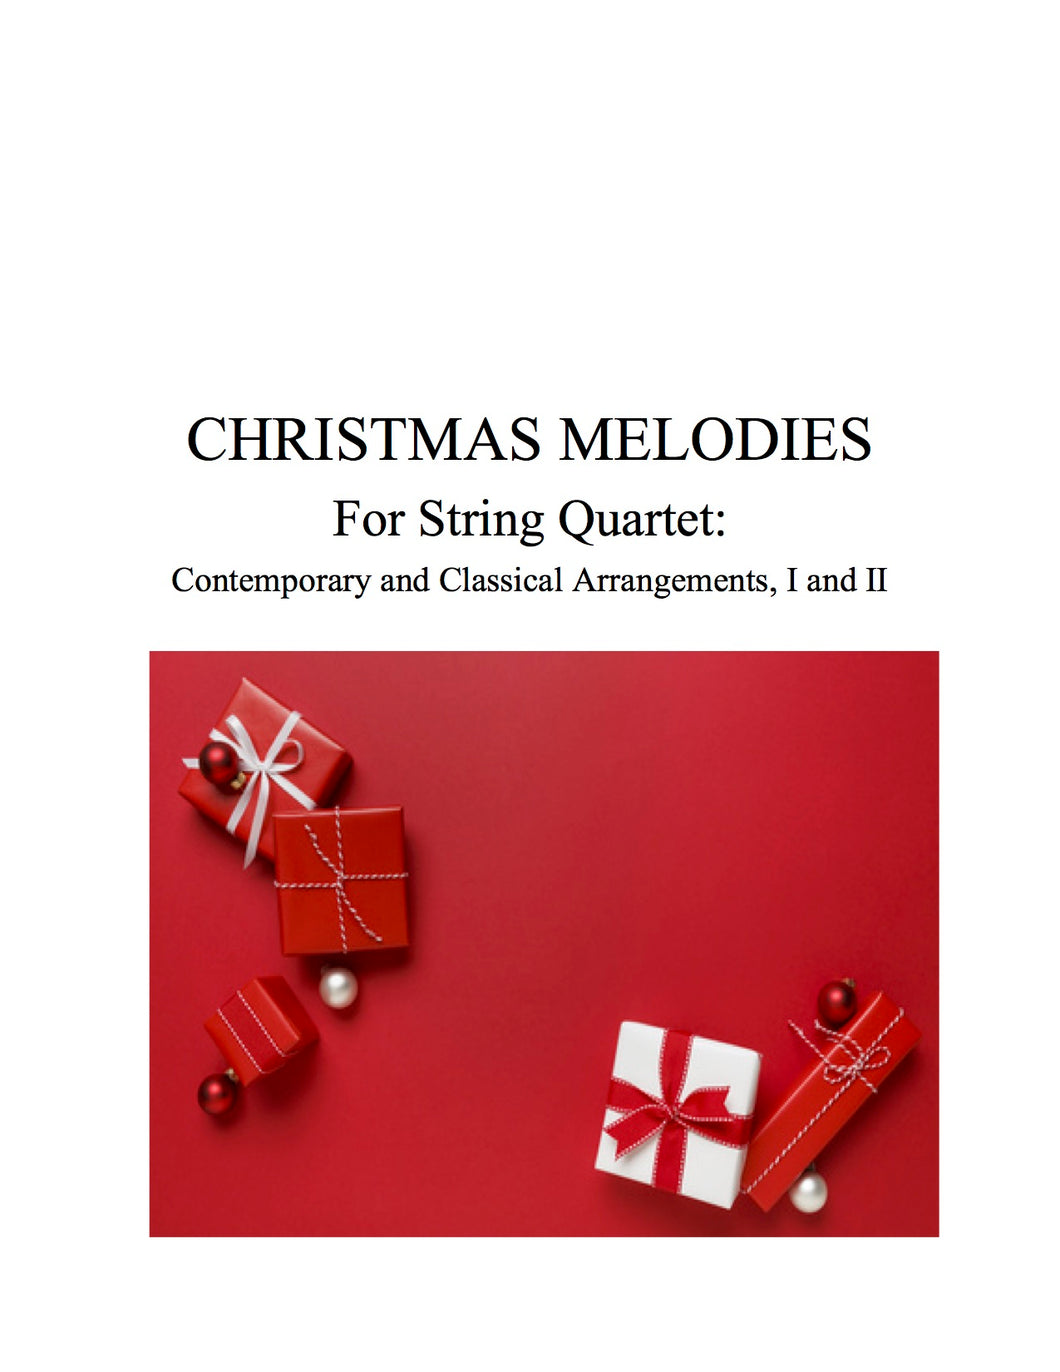 049 - Christmas Melodies For String Quartet, Volumes I and II